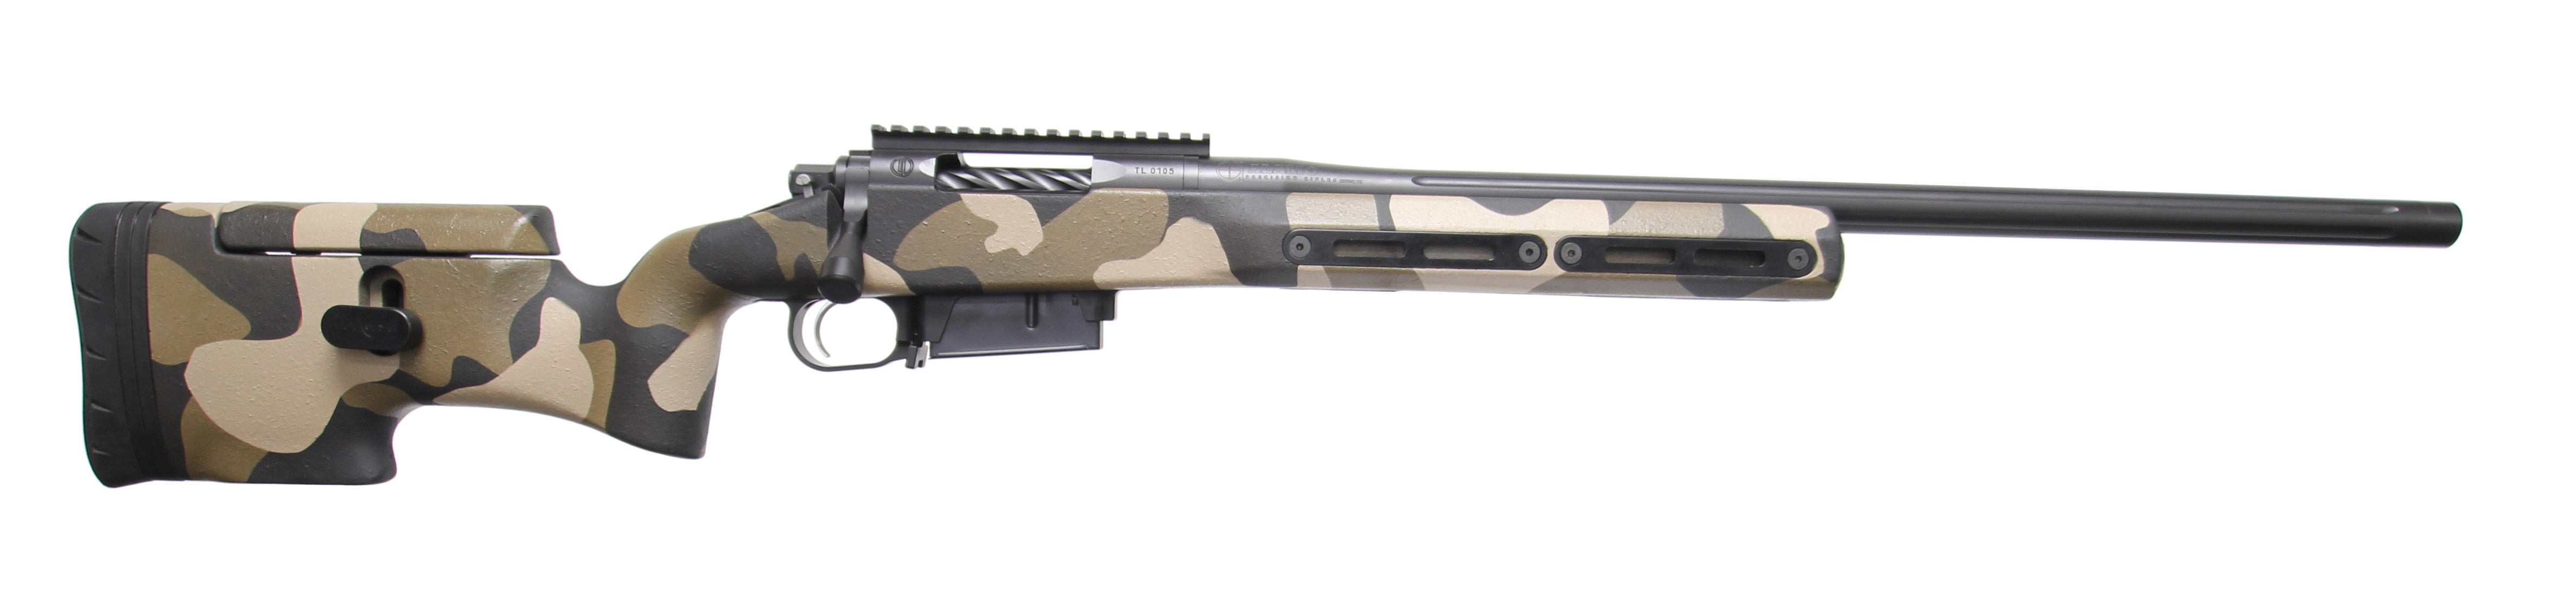 APR Adjustable Ranger 308 Win